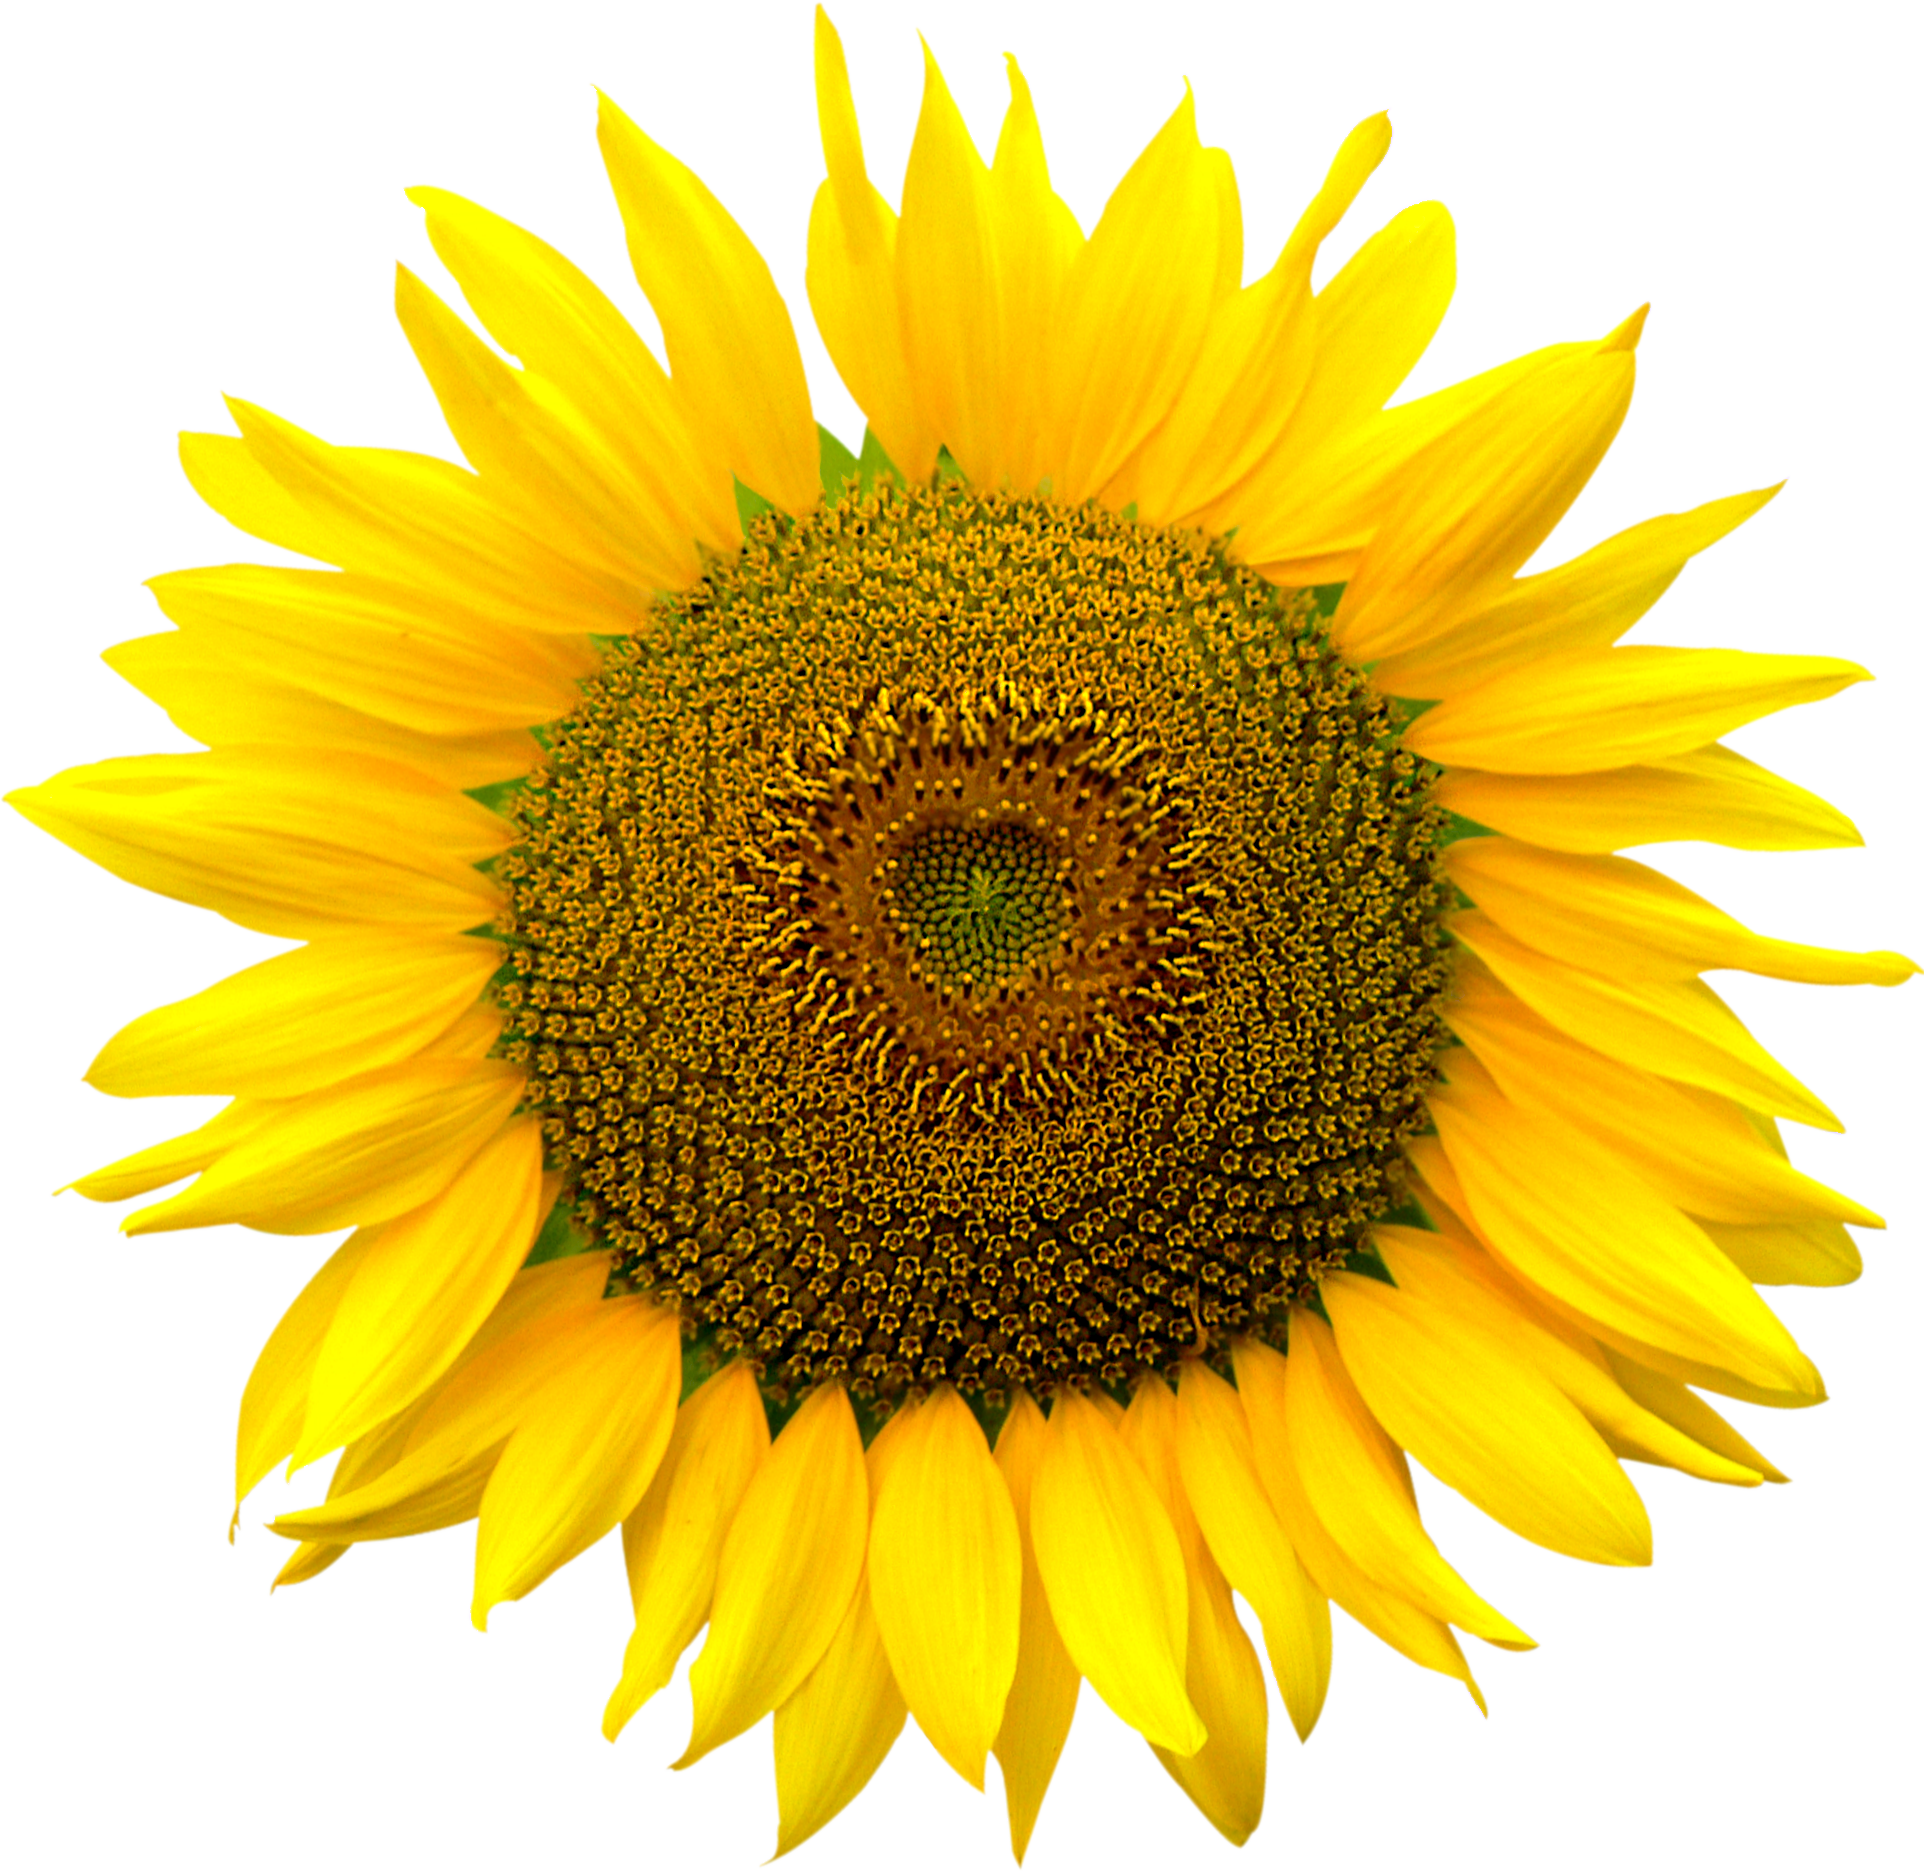 Png format images. Sunflower heart inside file